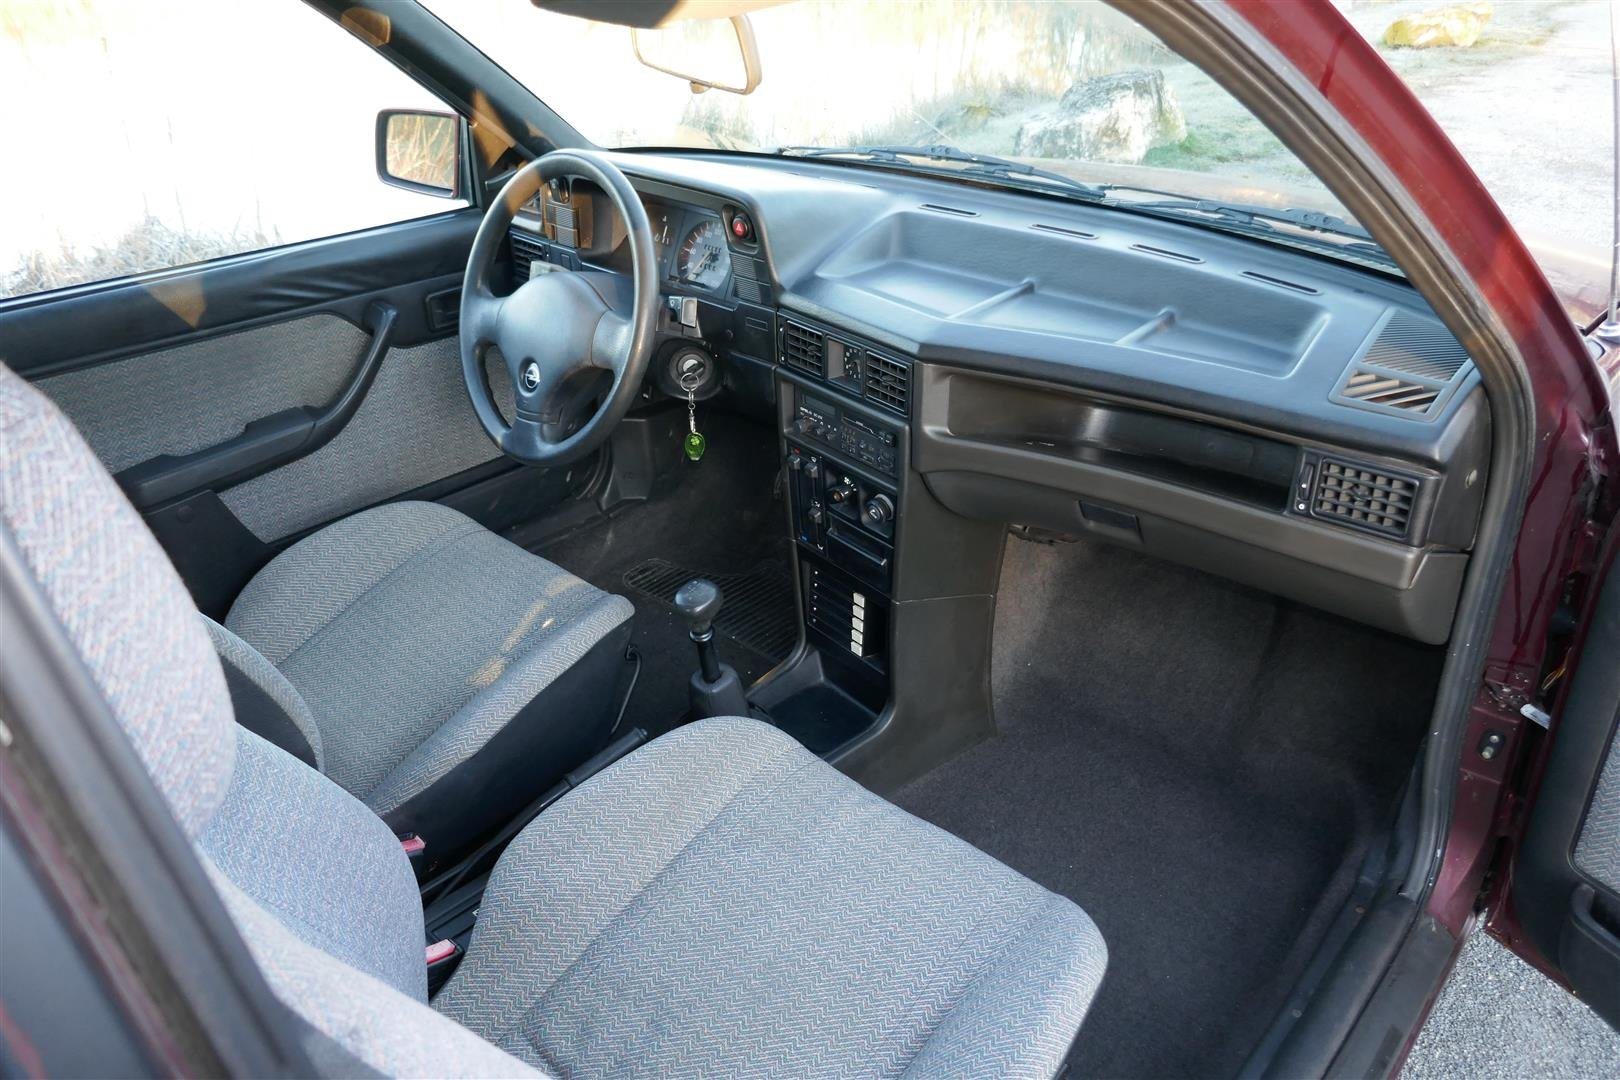 Opel Kadett 1.4 Sport , 1991. 1 owner from new LHD For Sale (picture 4 of 6)